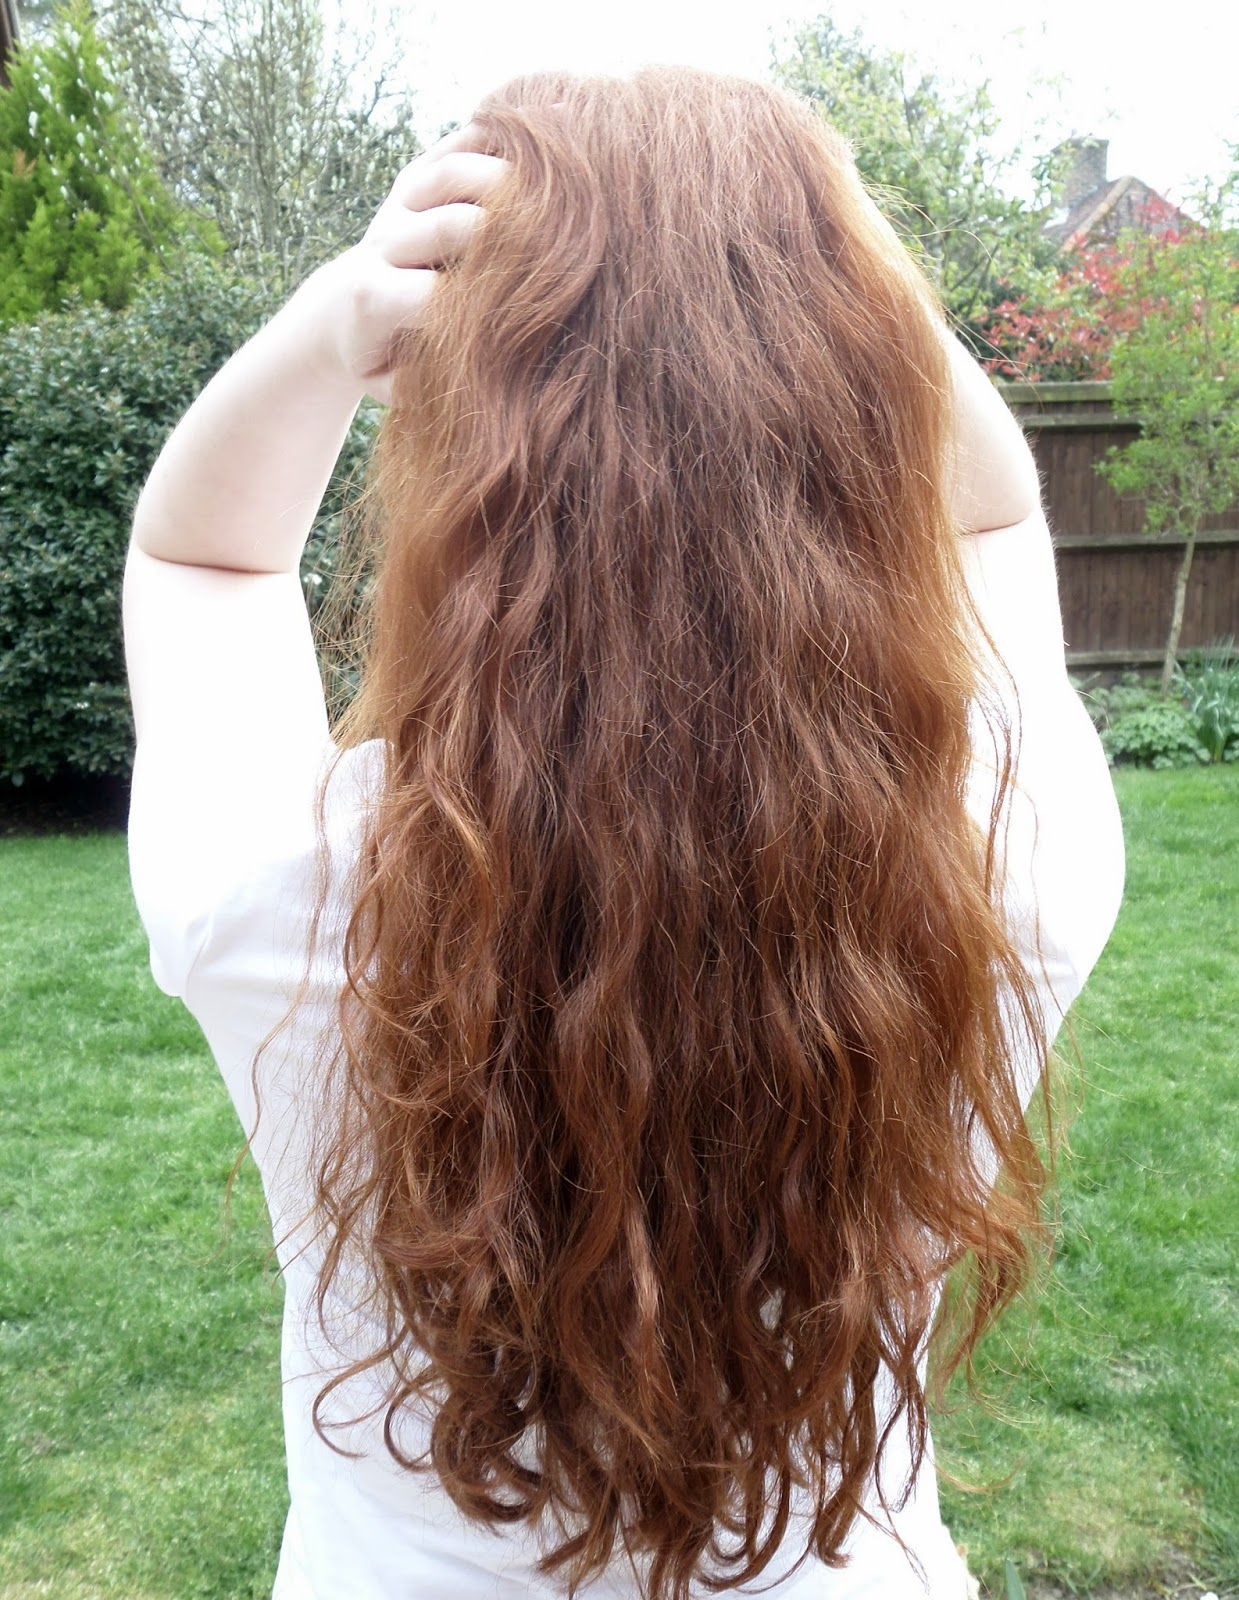 Things Only People With Curly Hair Will Understand